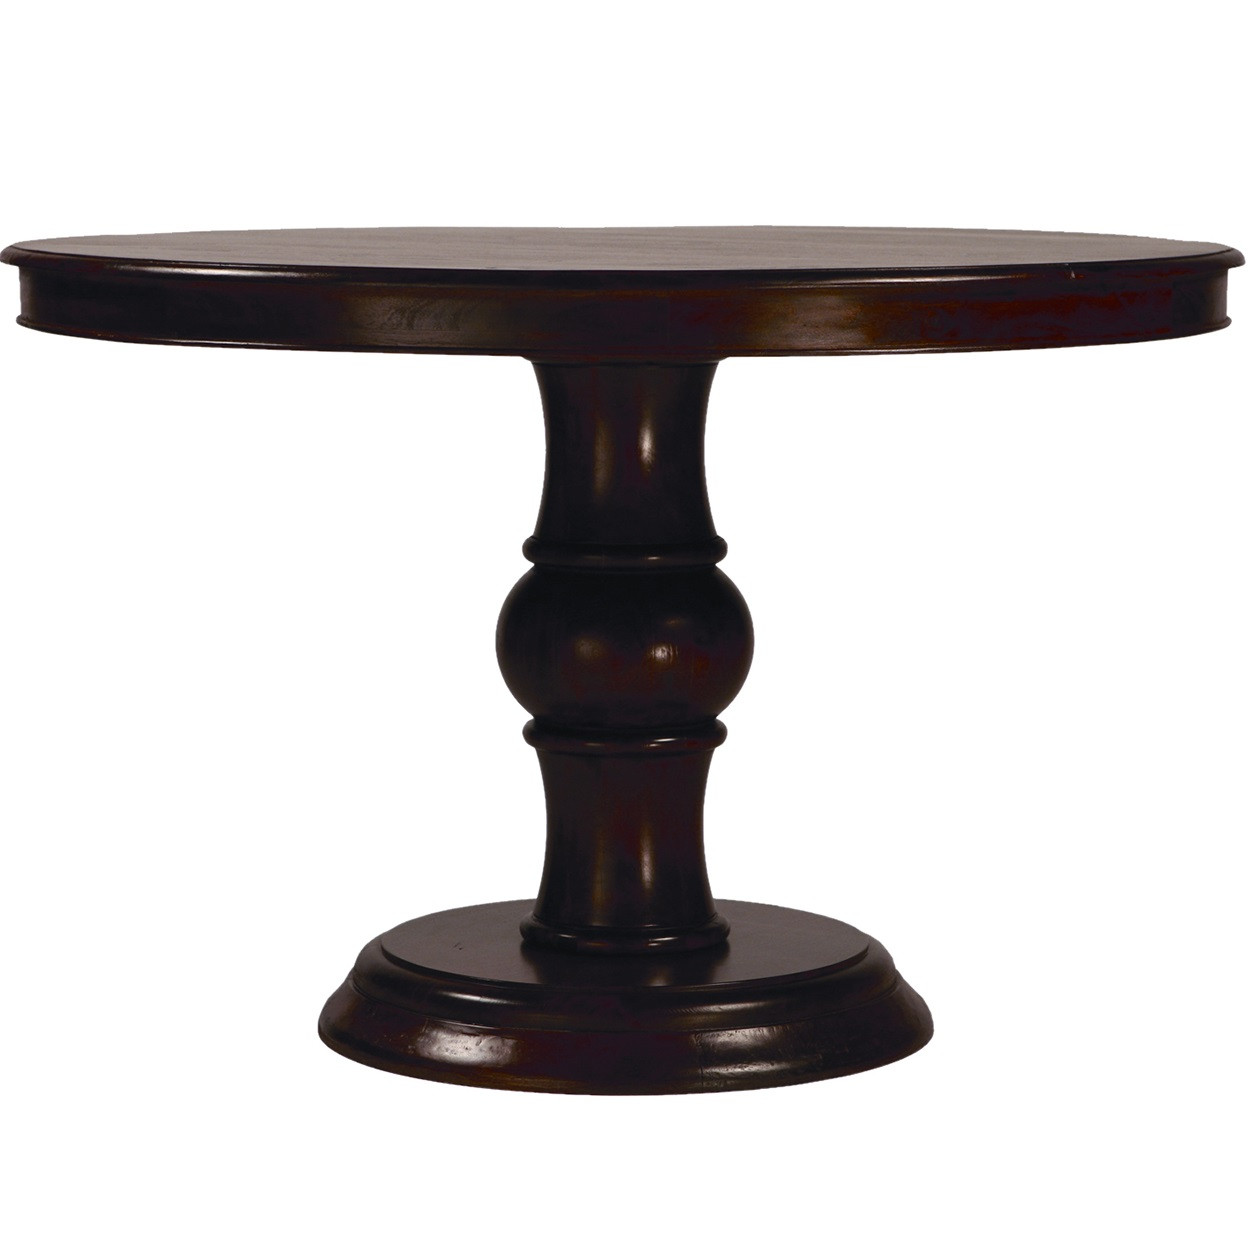 Lauren dark wood round pedestal dining table 47 zin home for Pedestal dining table